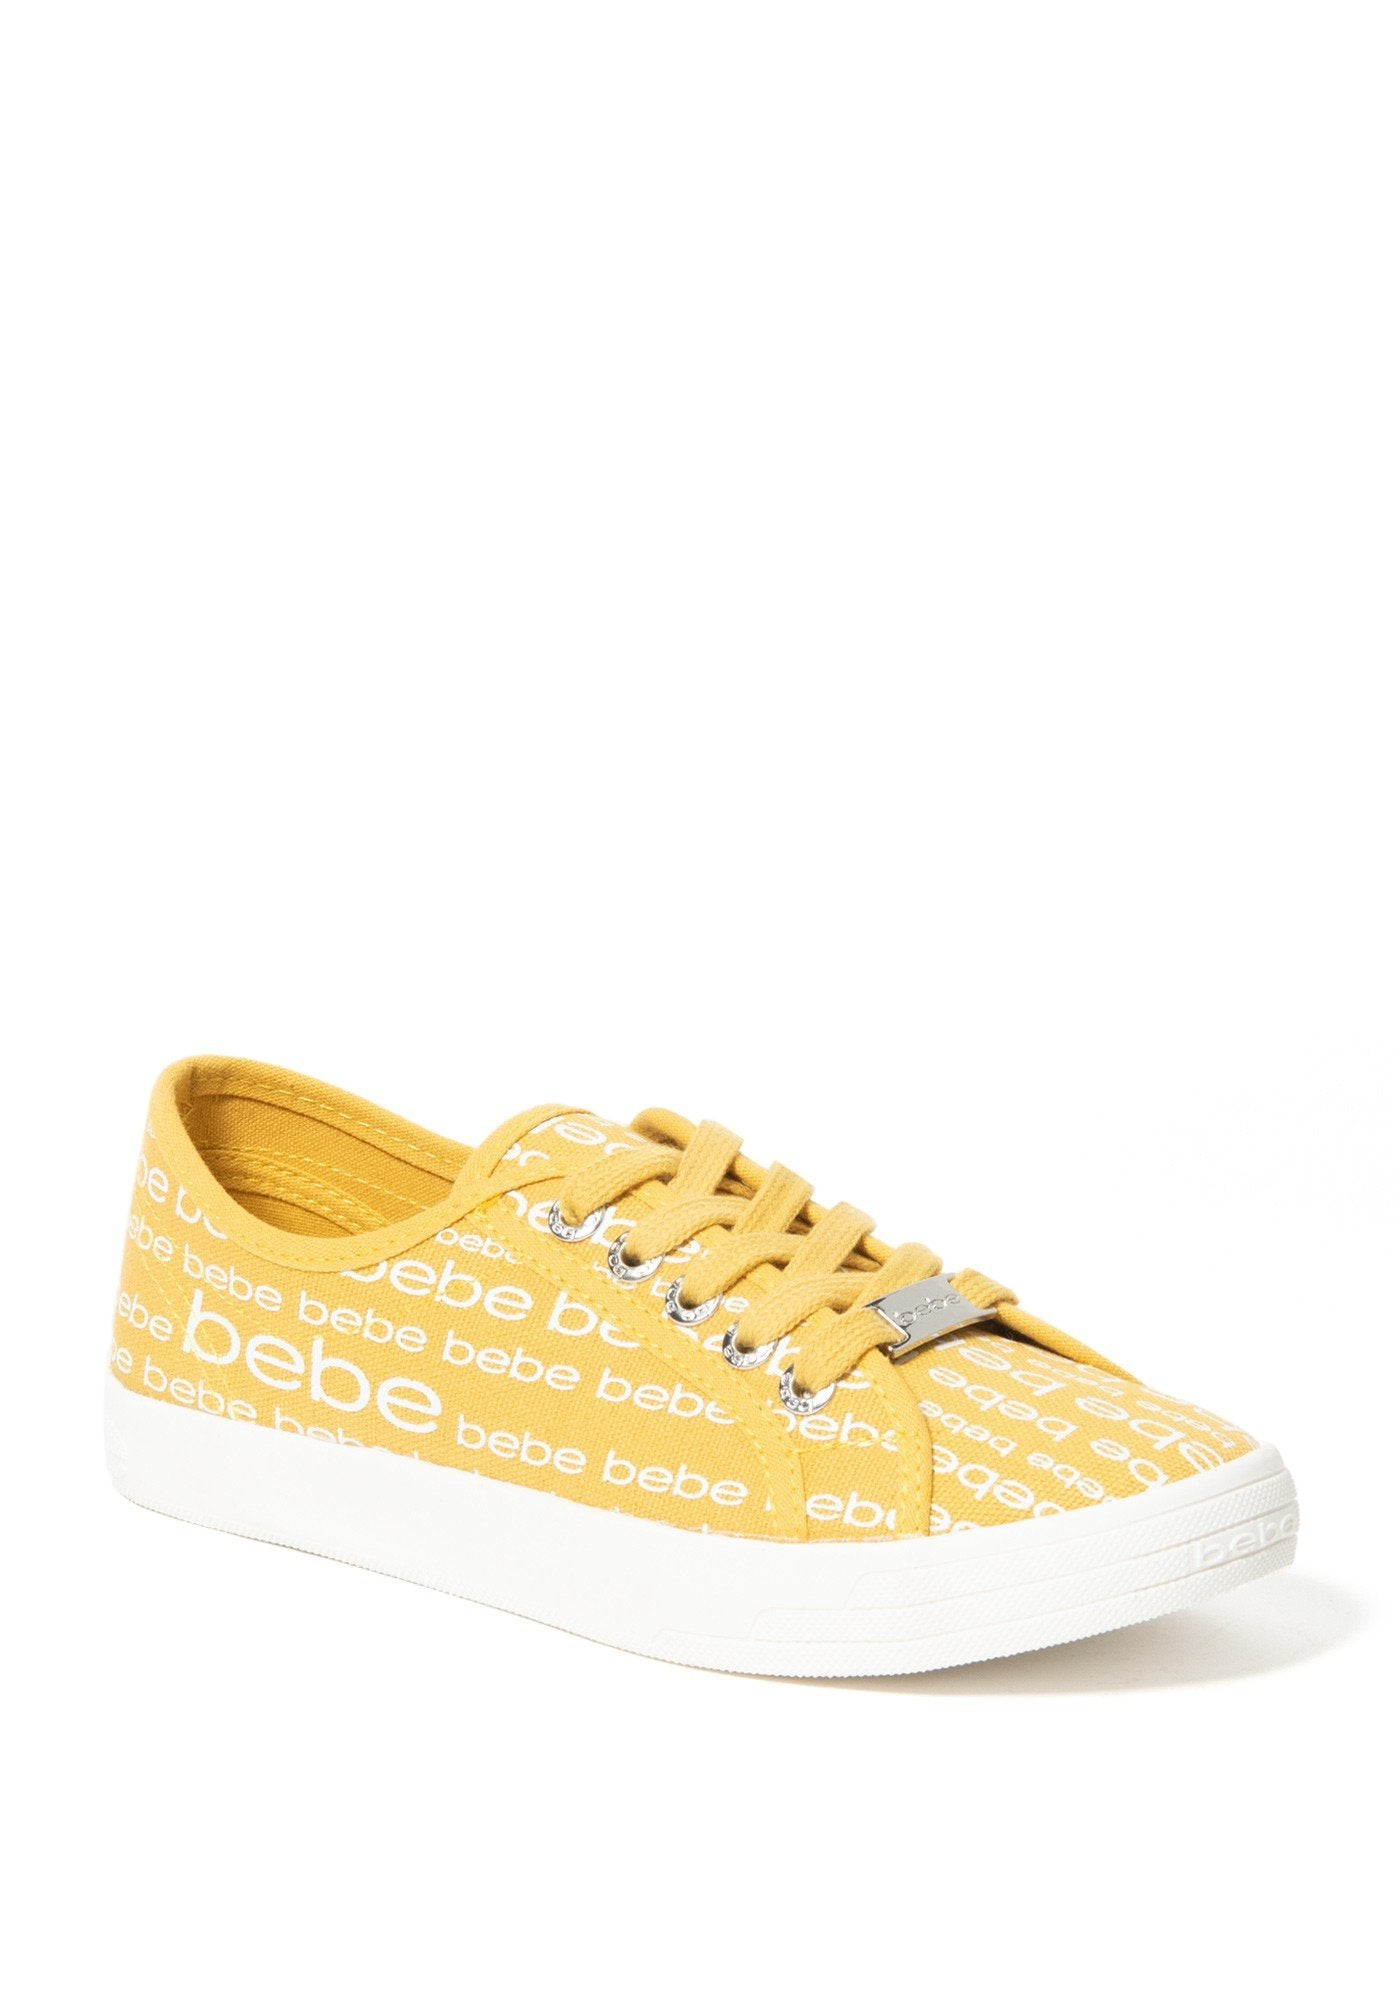 Bebe coupon: Bebe Women's Daylin Logo Sneakers, Size 6.5 in Yellow Synthetic